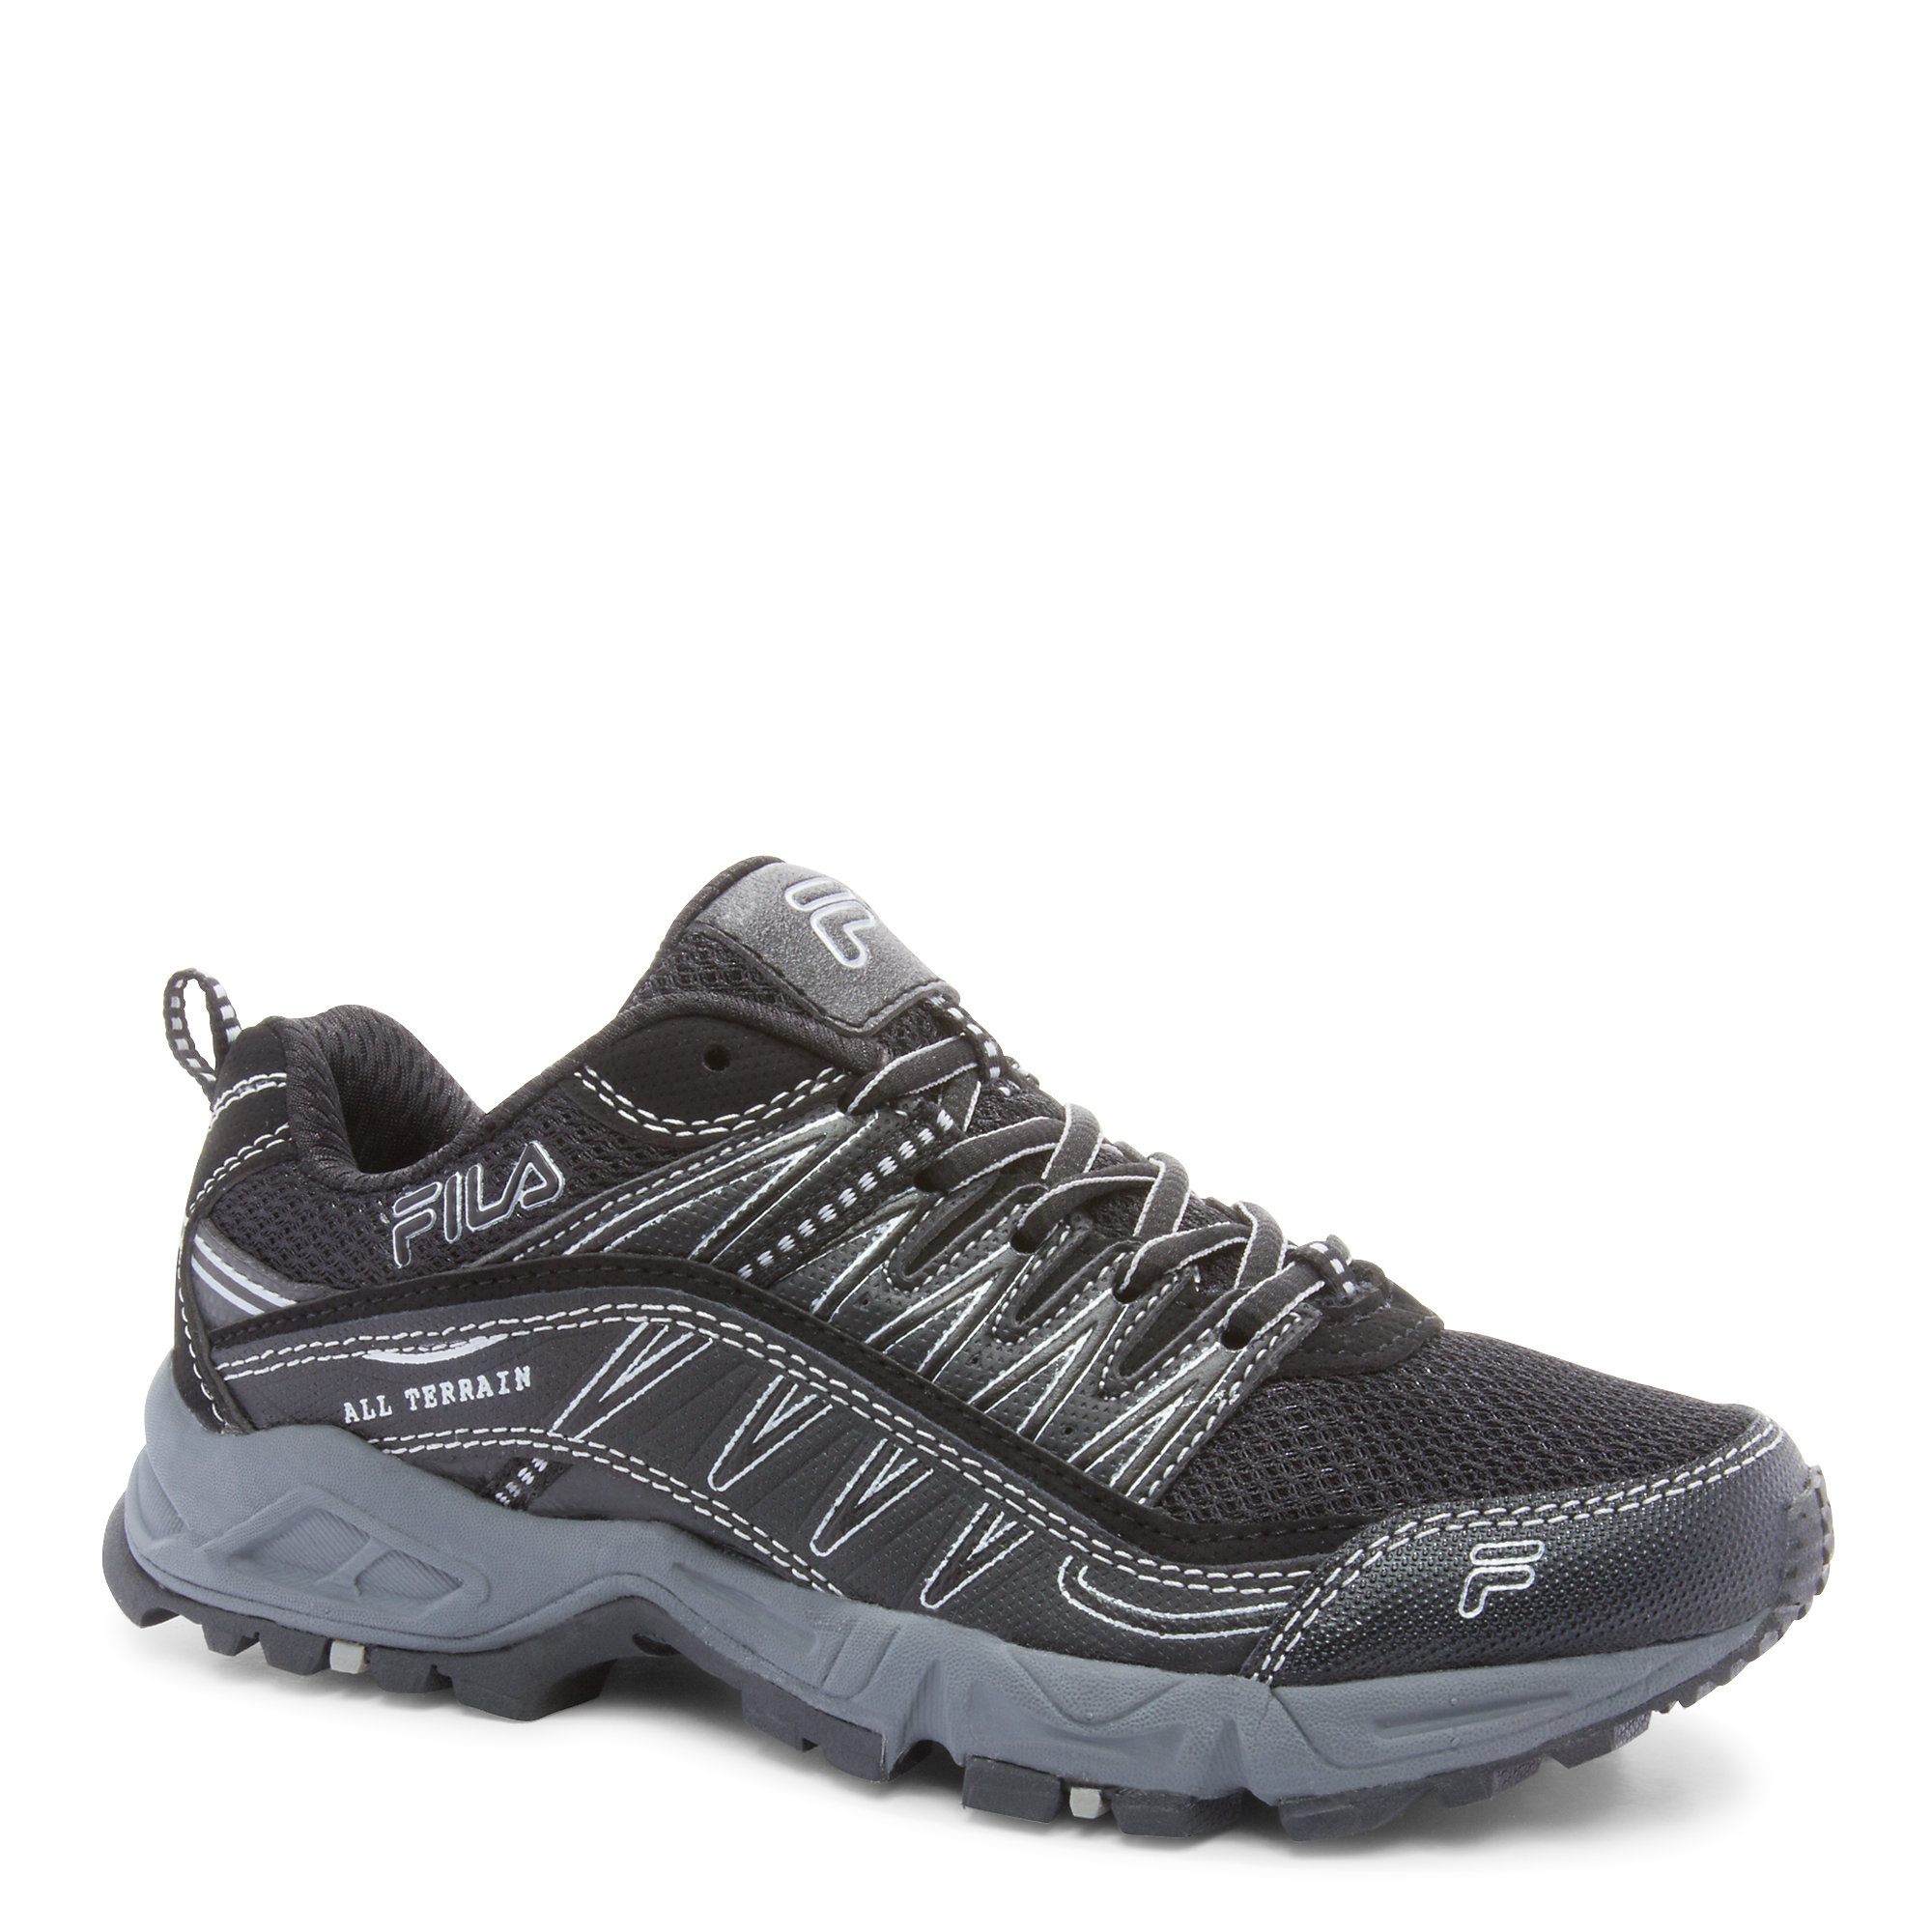 Fila Women's Running Shoes